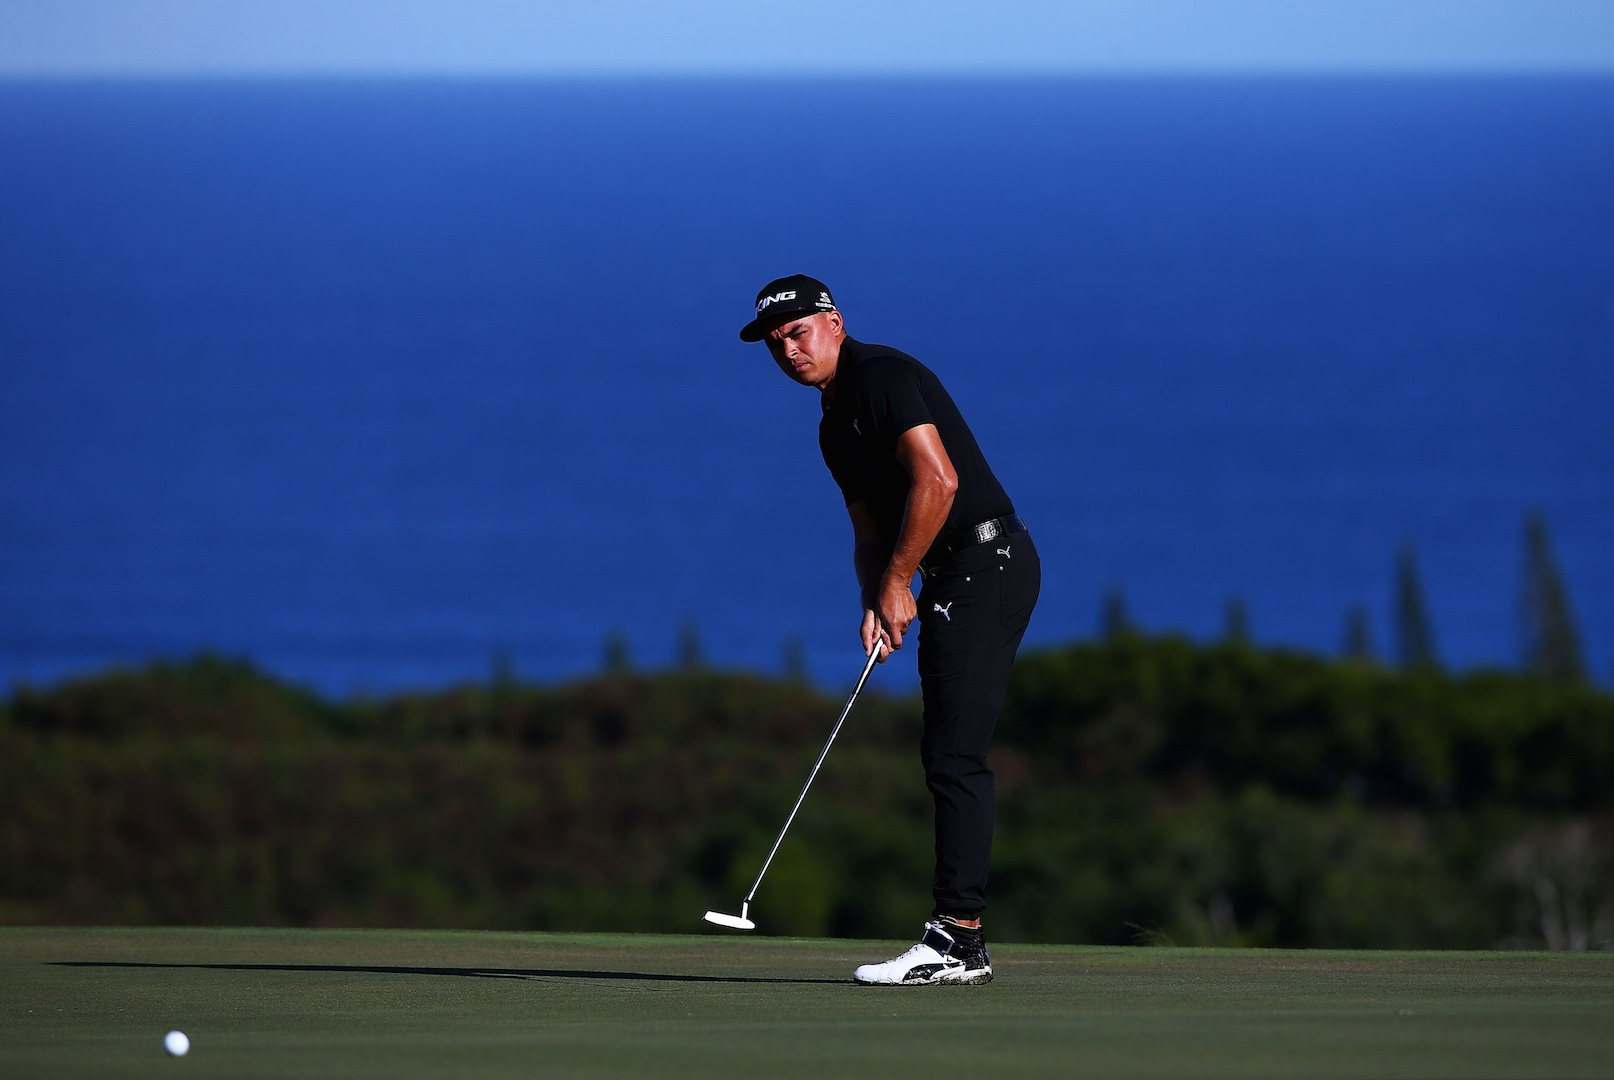 Rickie Fowler wears high tops and tracksuit while playing - GolfPunkHQ a3532f4bd8ca